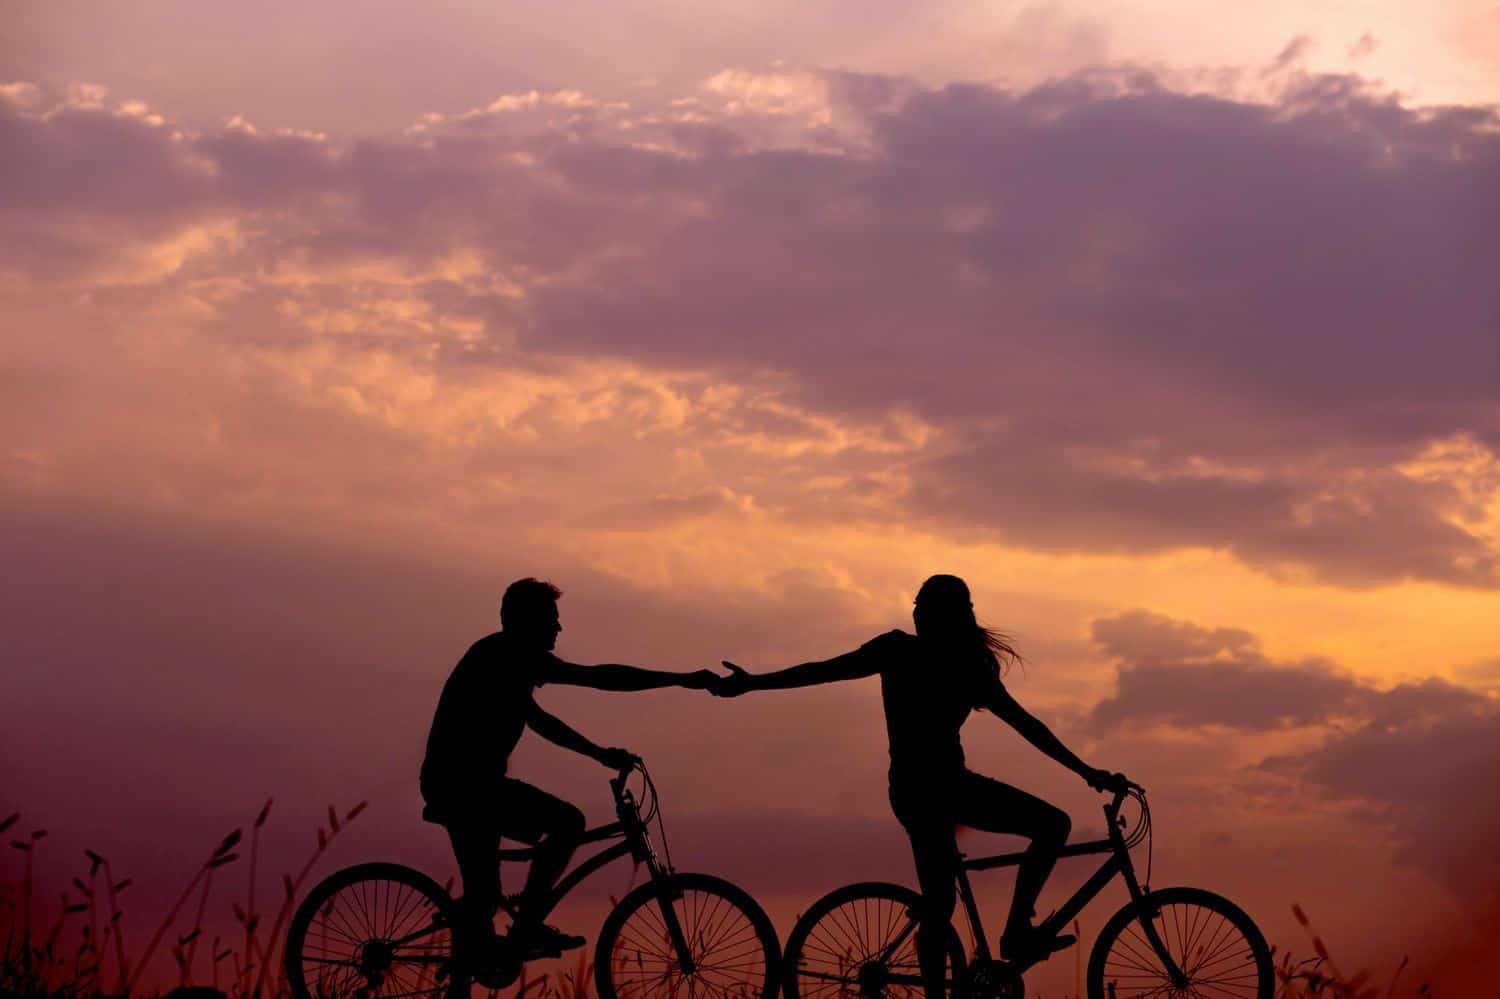 Two silhouetted cyclists hold hands in front of a sunset.